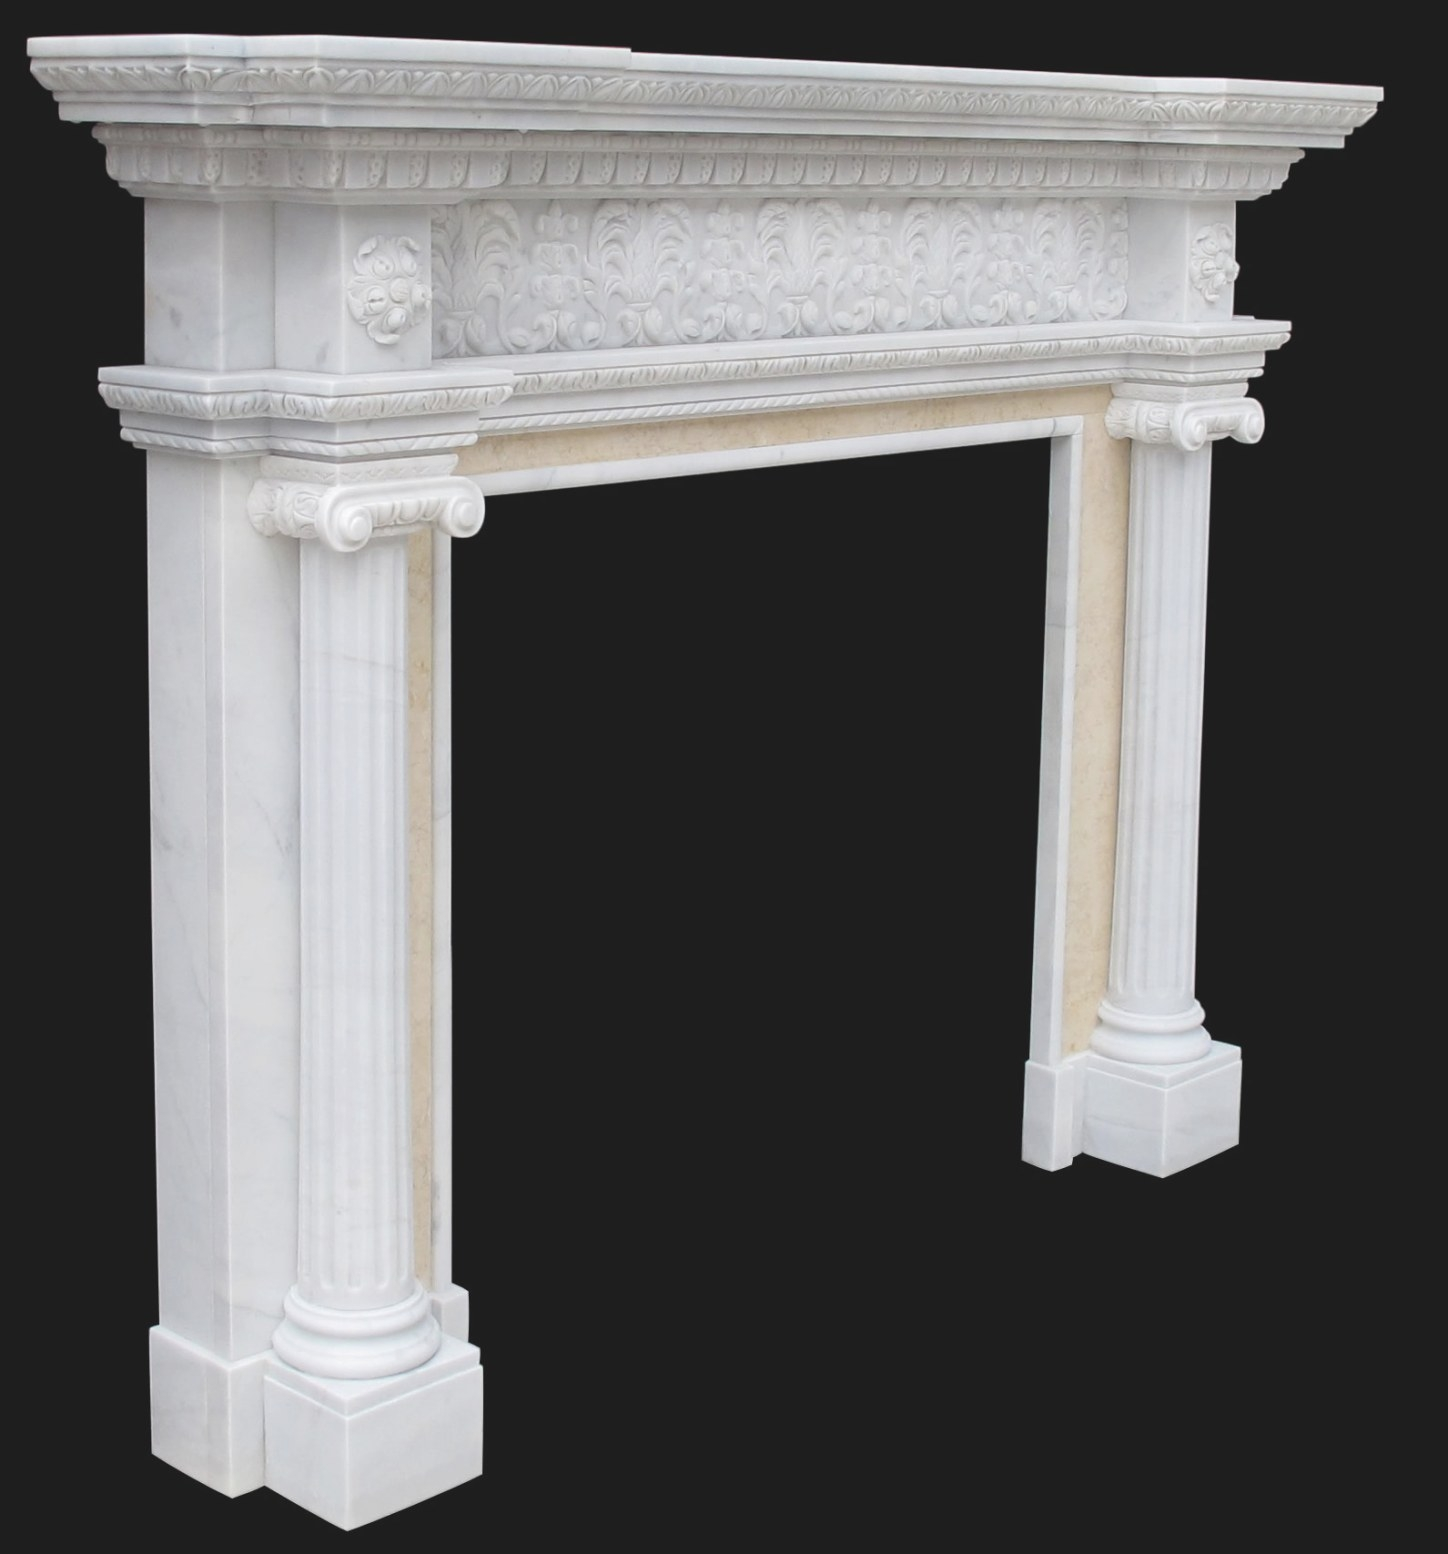 Ionic Albany New York Fireplace Sale intended for Fireplace Mantels For Sale